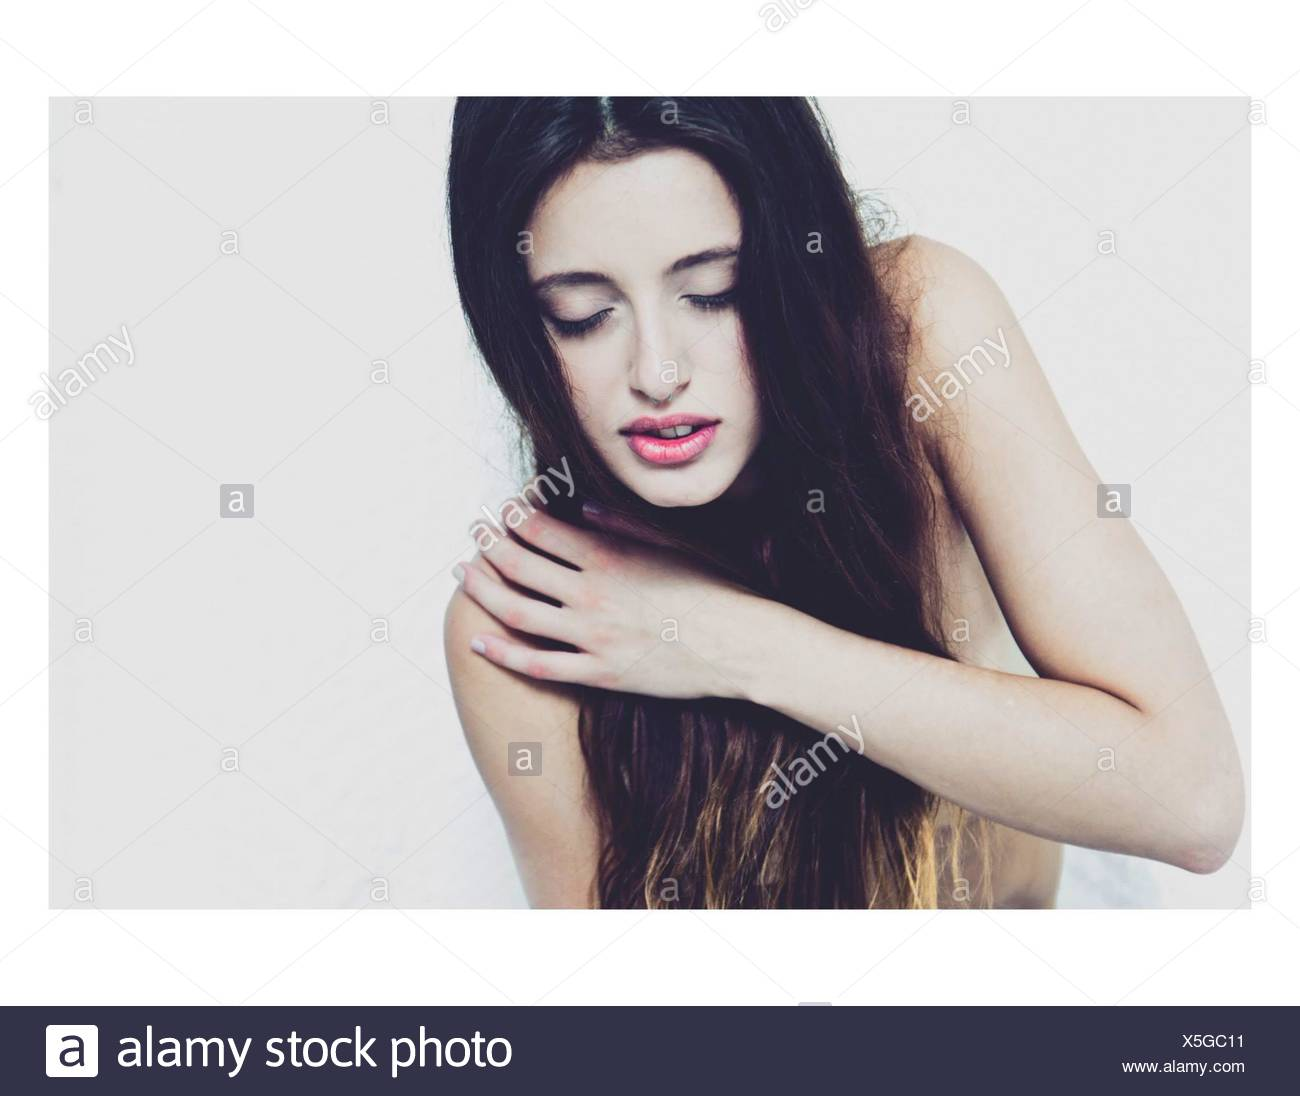 High Angle View Of Beautiful Young Woman With Arms Crossed Against White Background - Stock Image